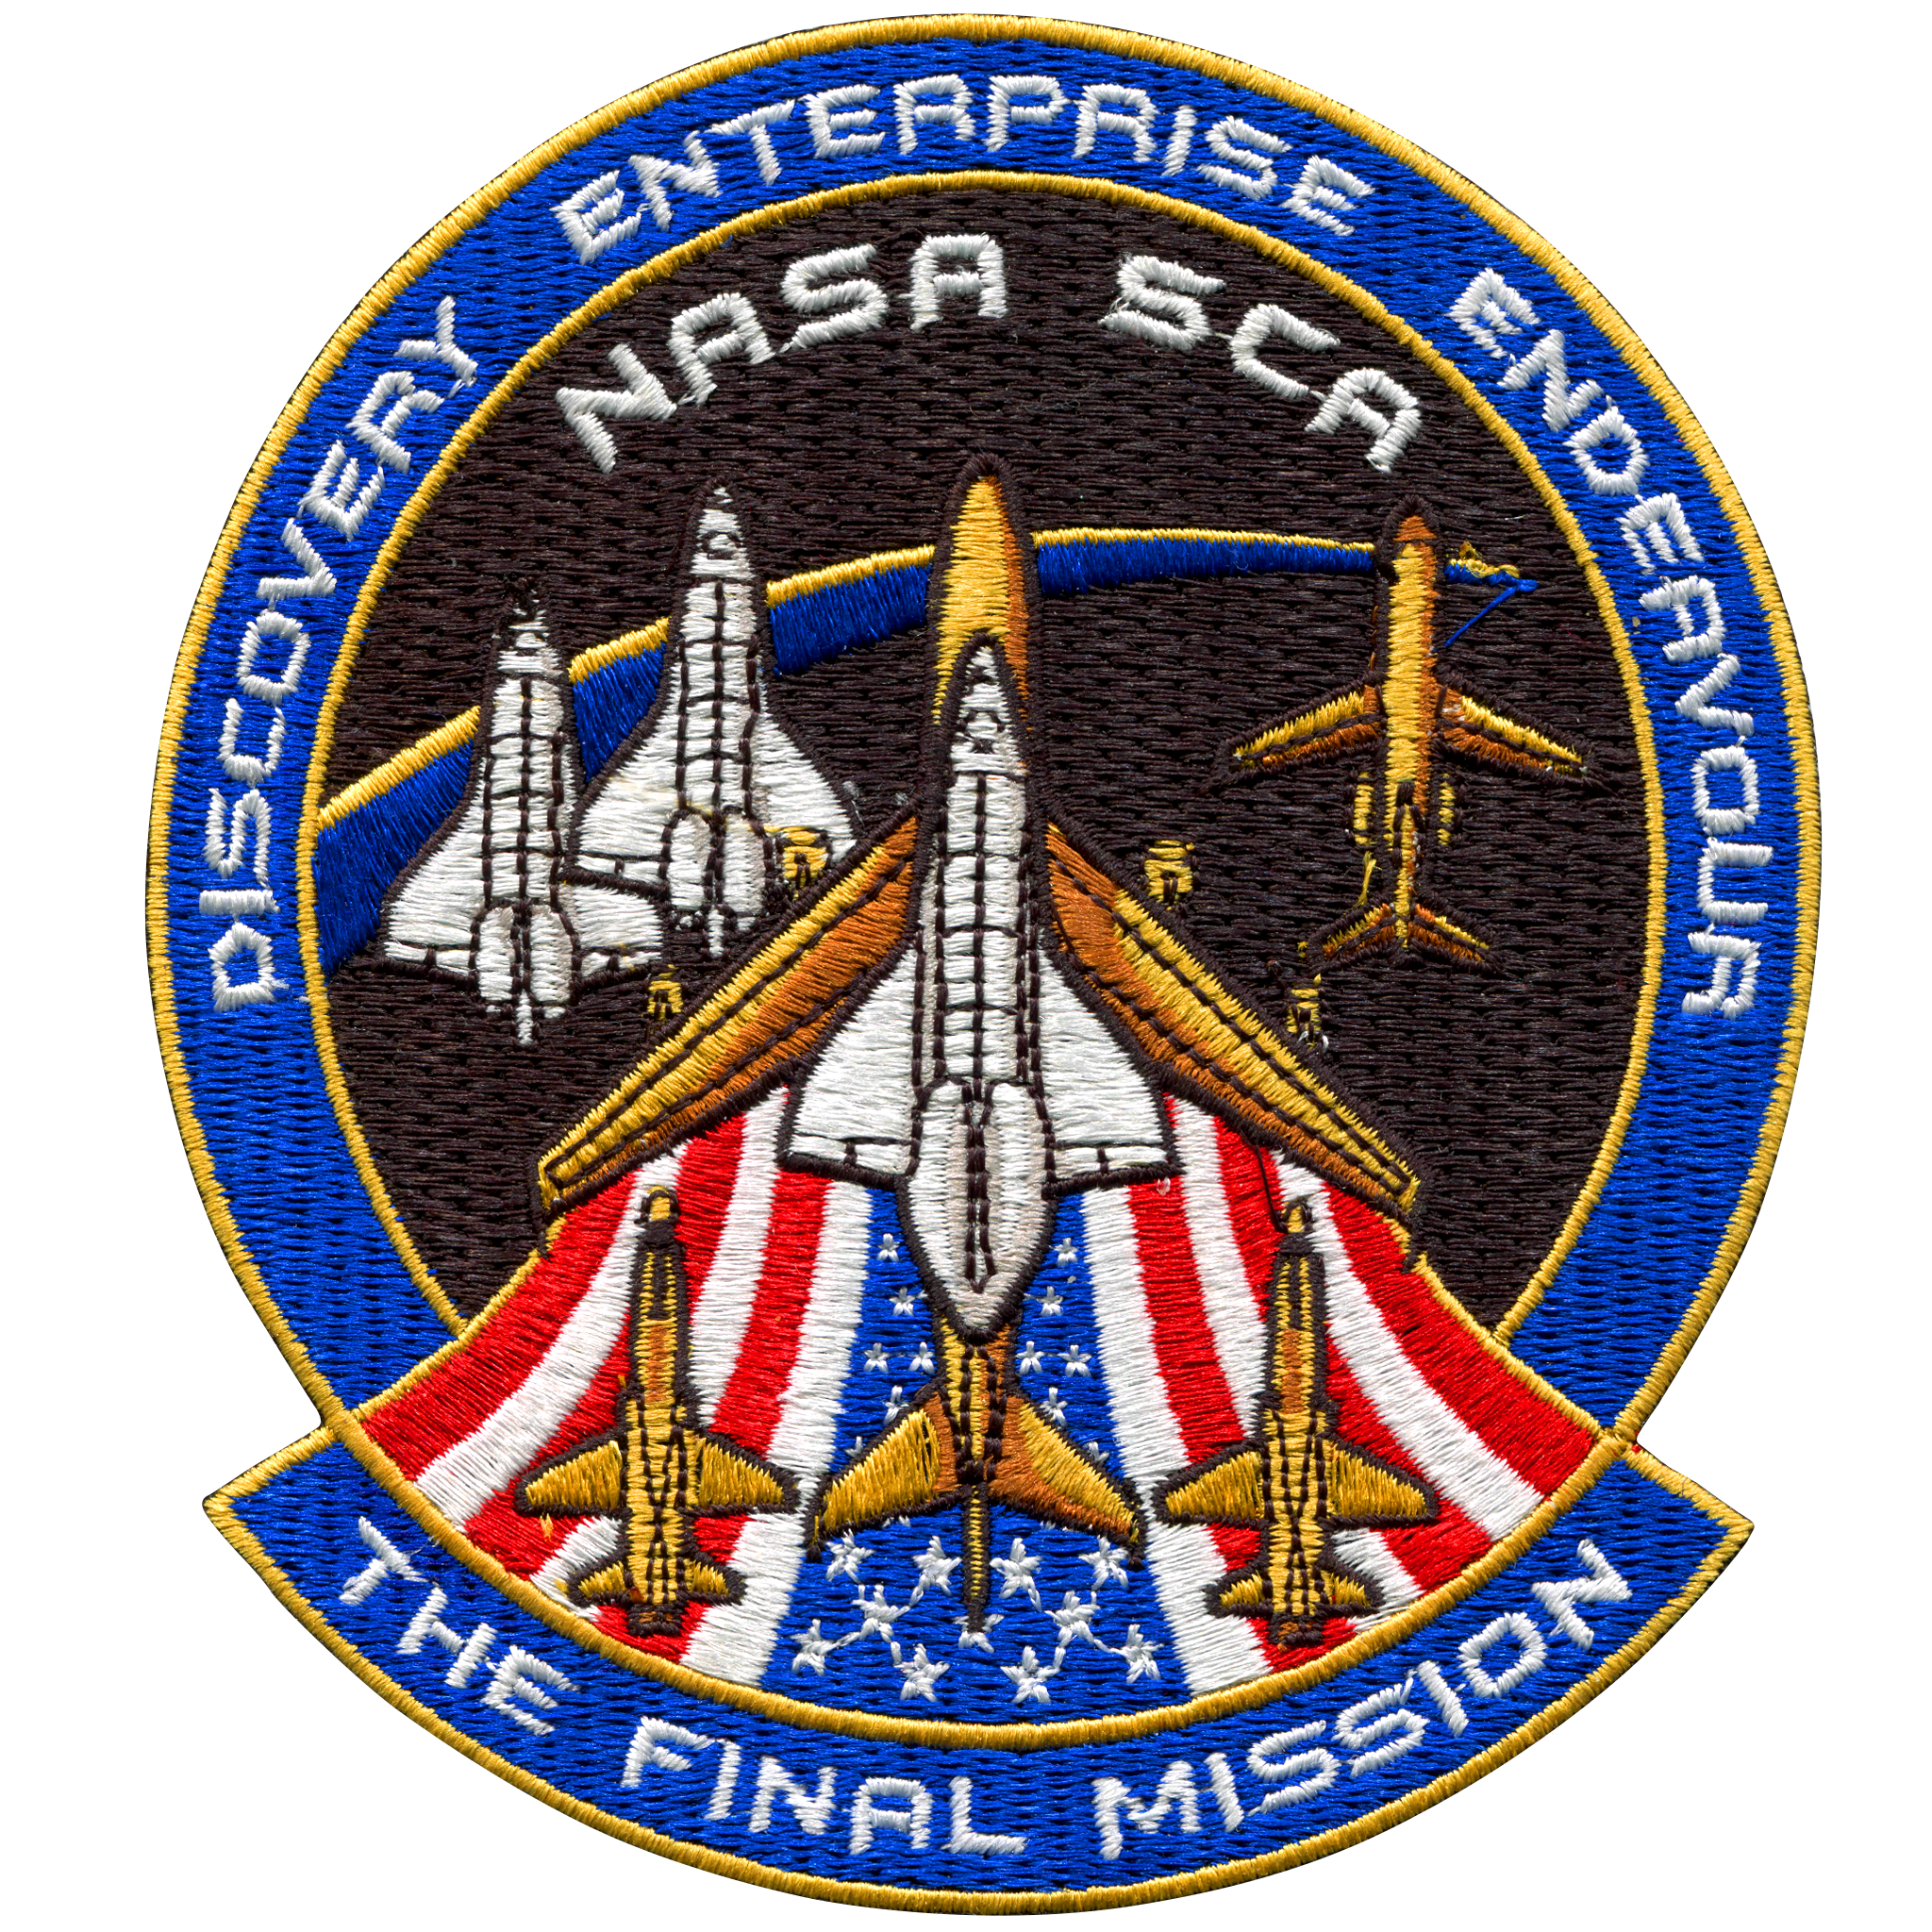 nasa patches for sale - 820×969